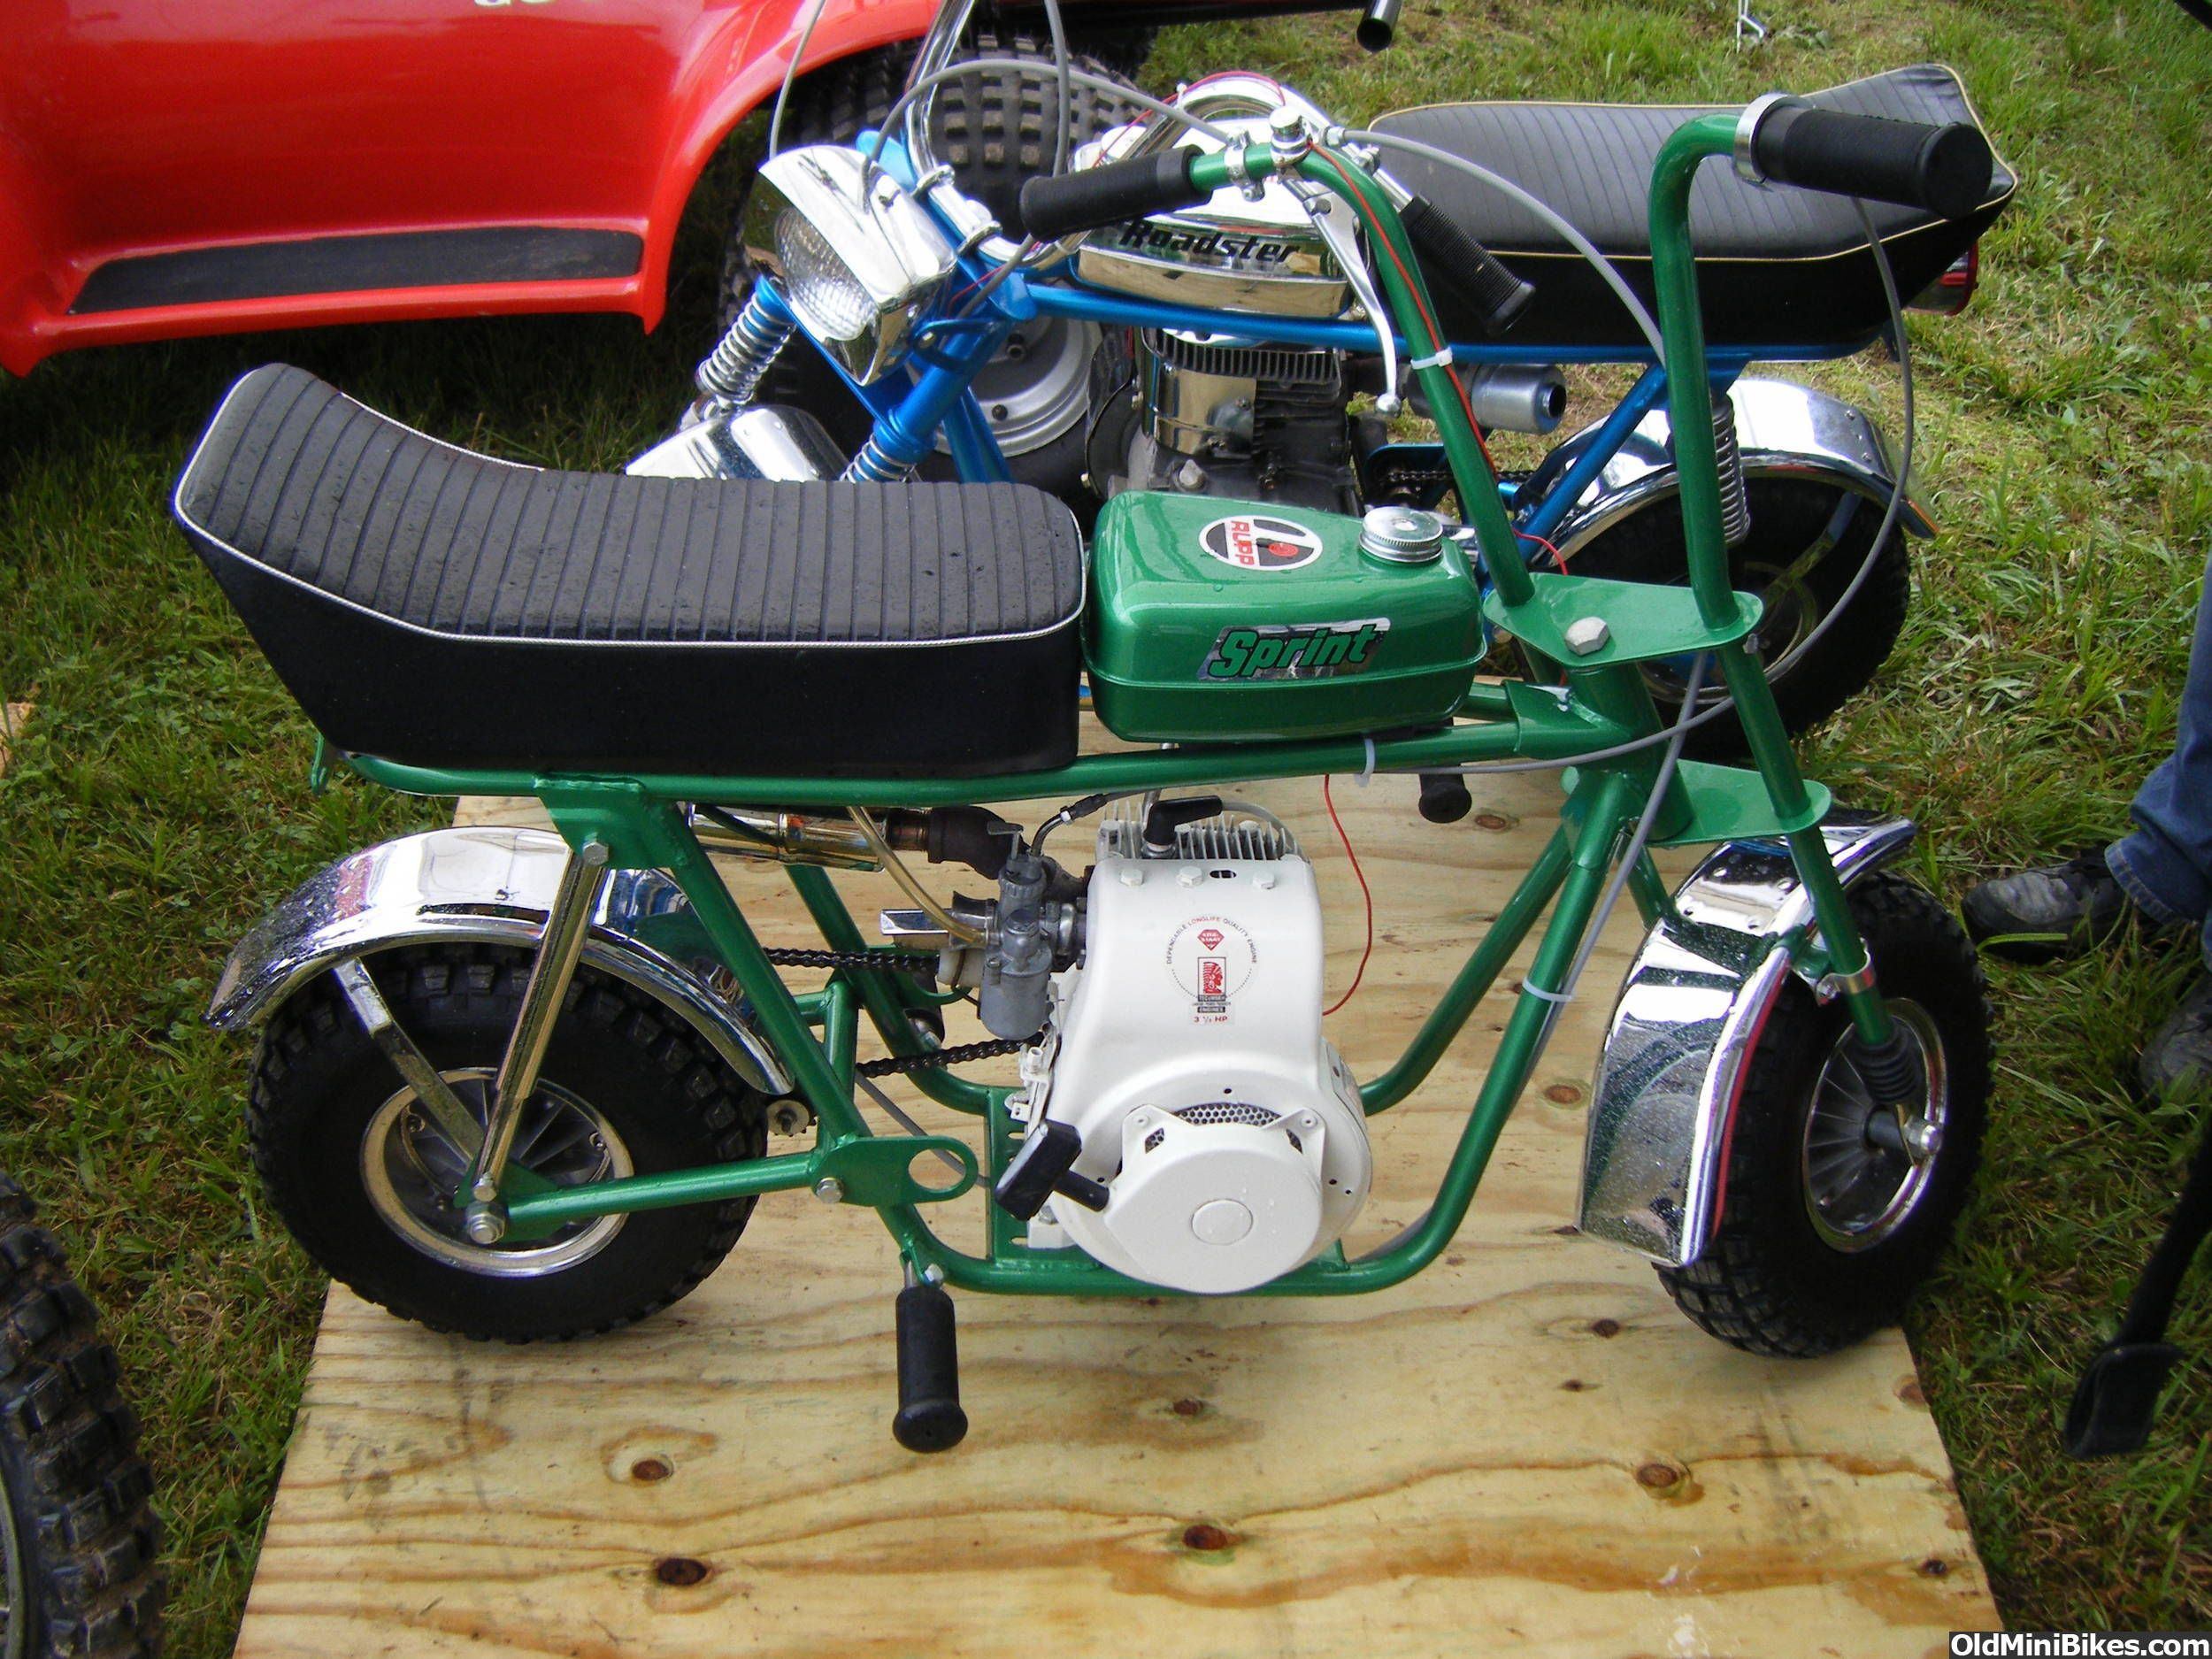 Pin by Craig Smith on Rupp & other vintage mini bikes ...